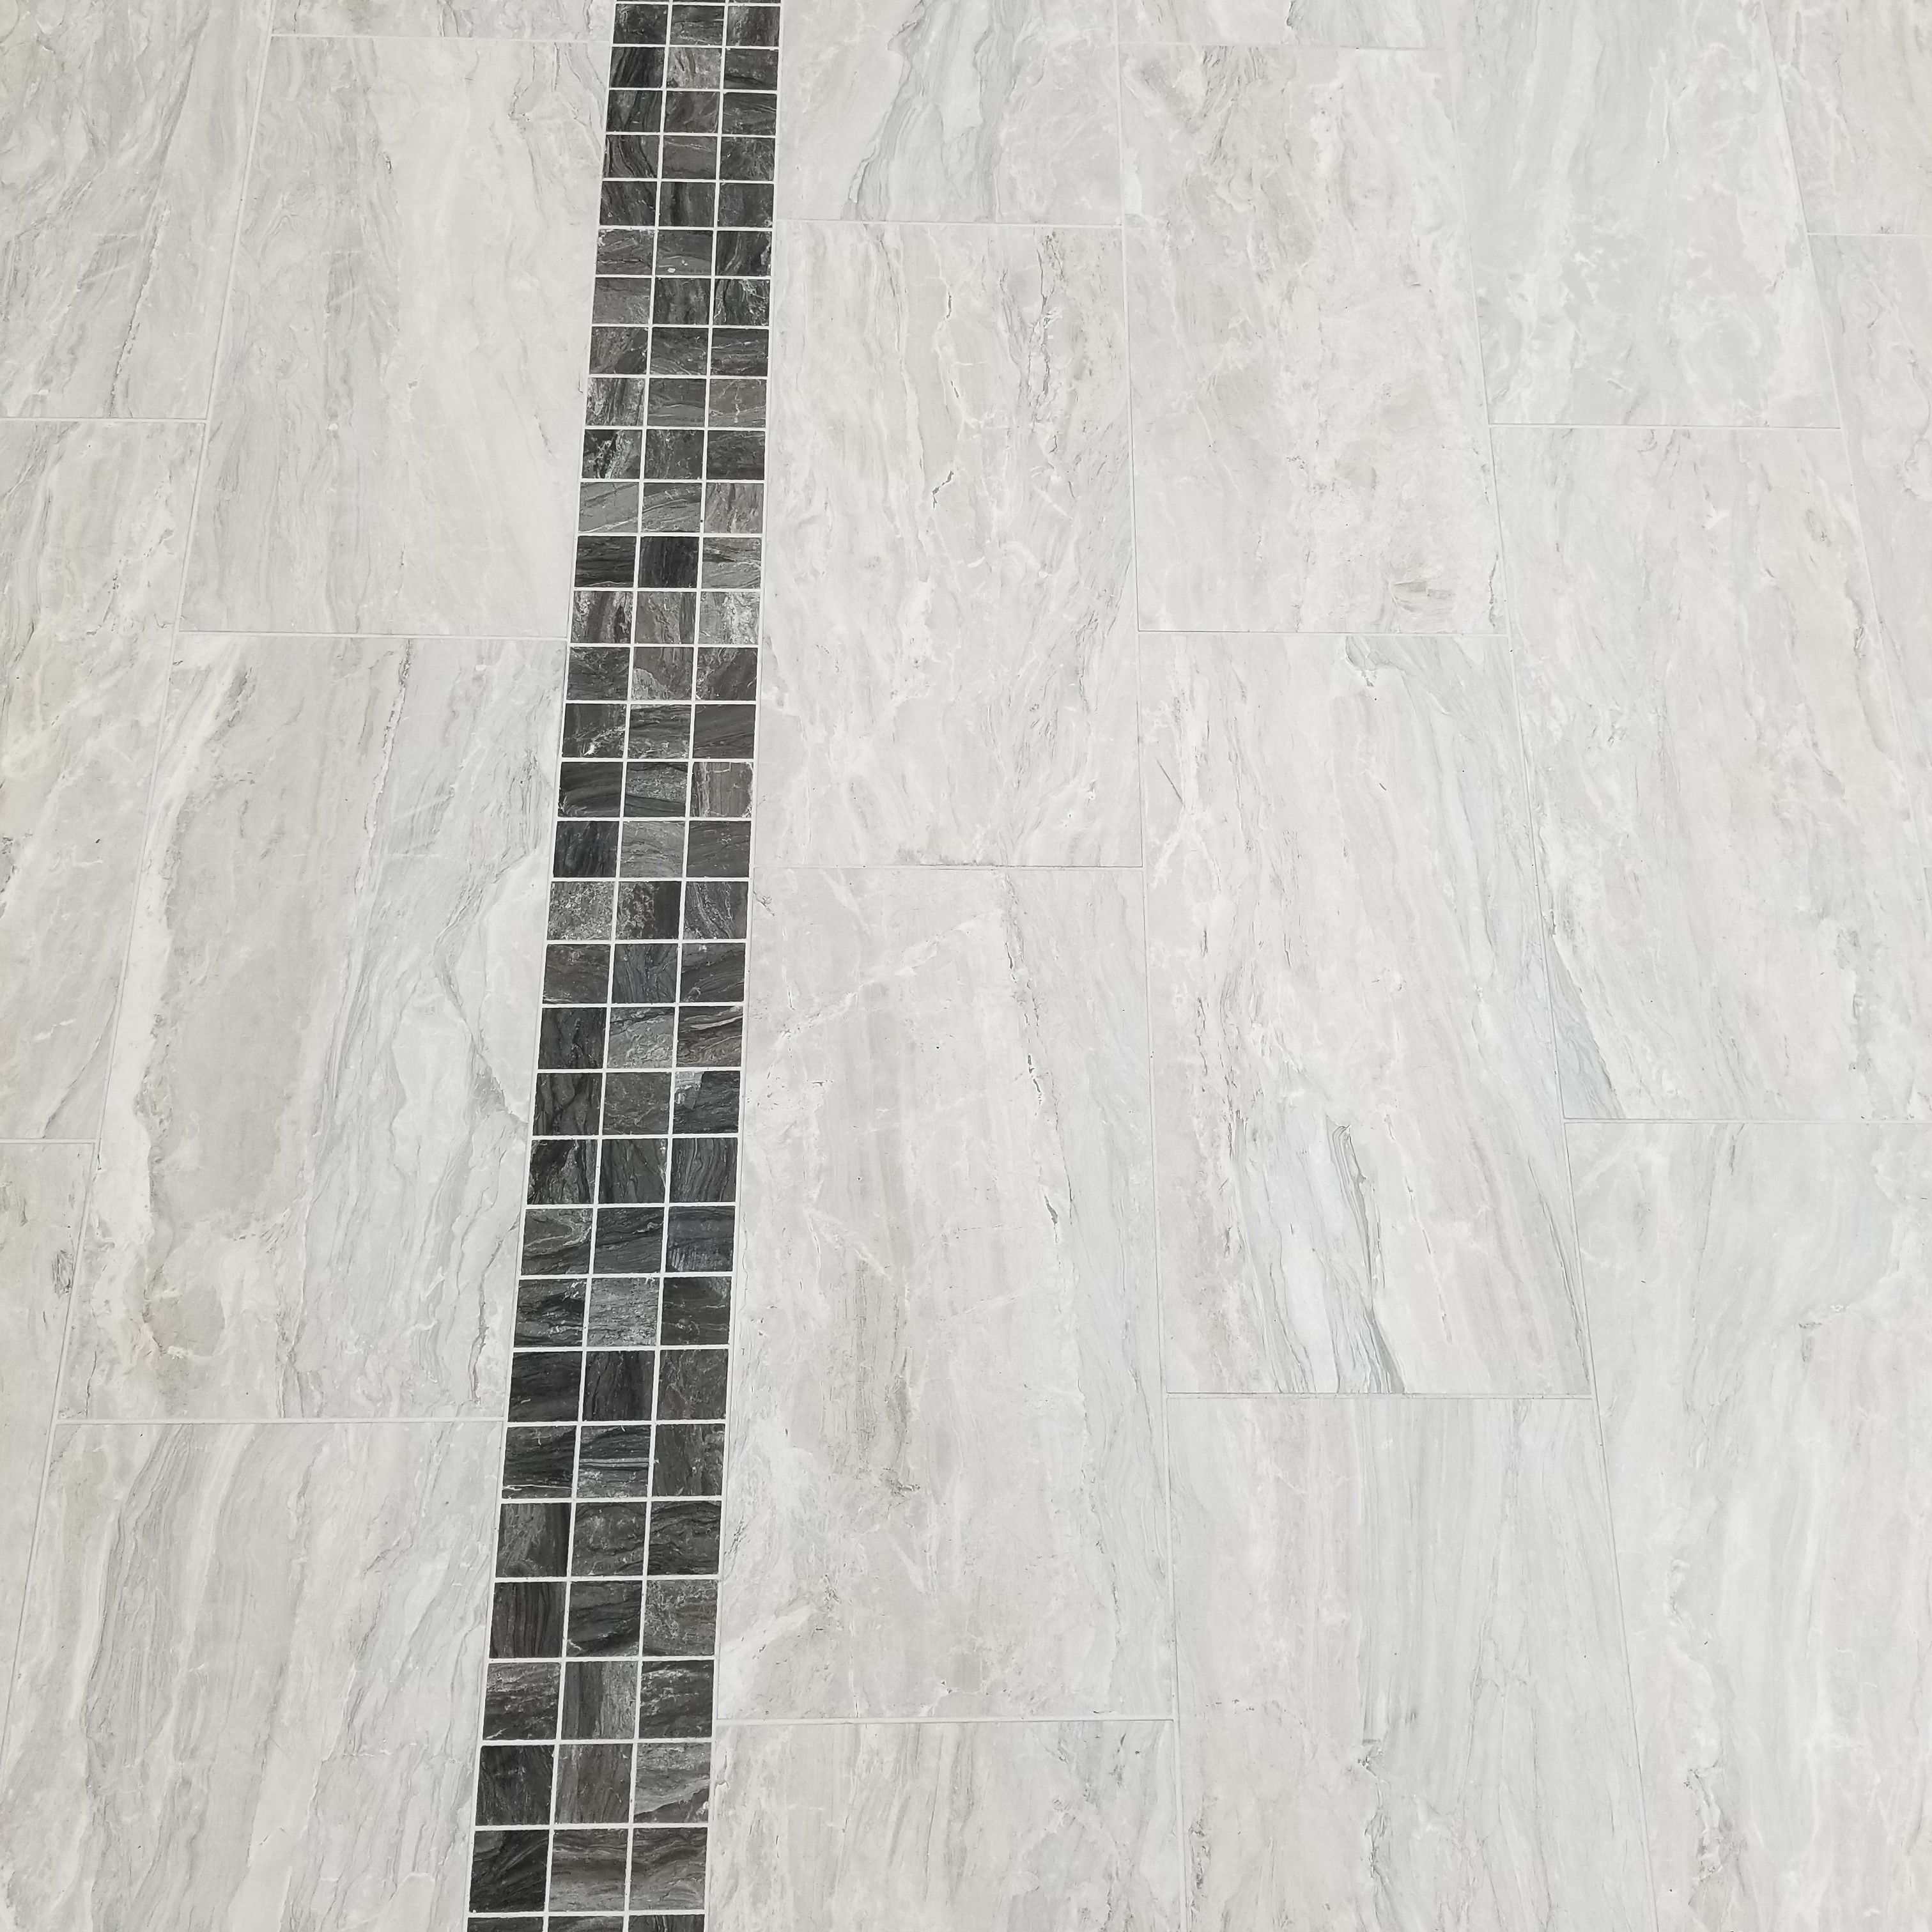 Gemstone Silver 12x24 With Gemstone Mink 2x2 Accent Band Flooring Store Tile Stores Porcelain Tile